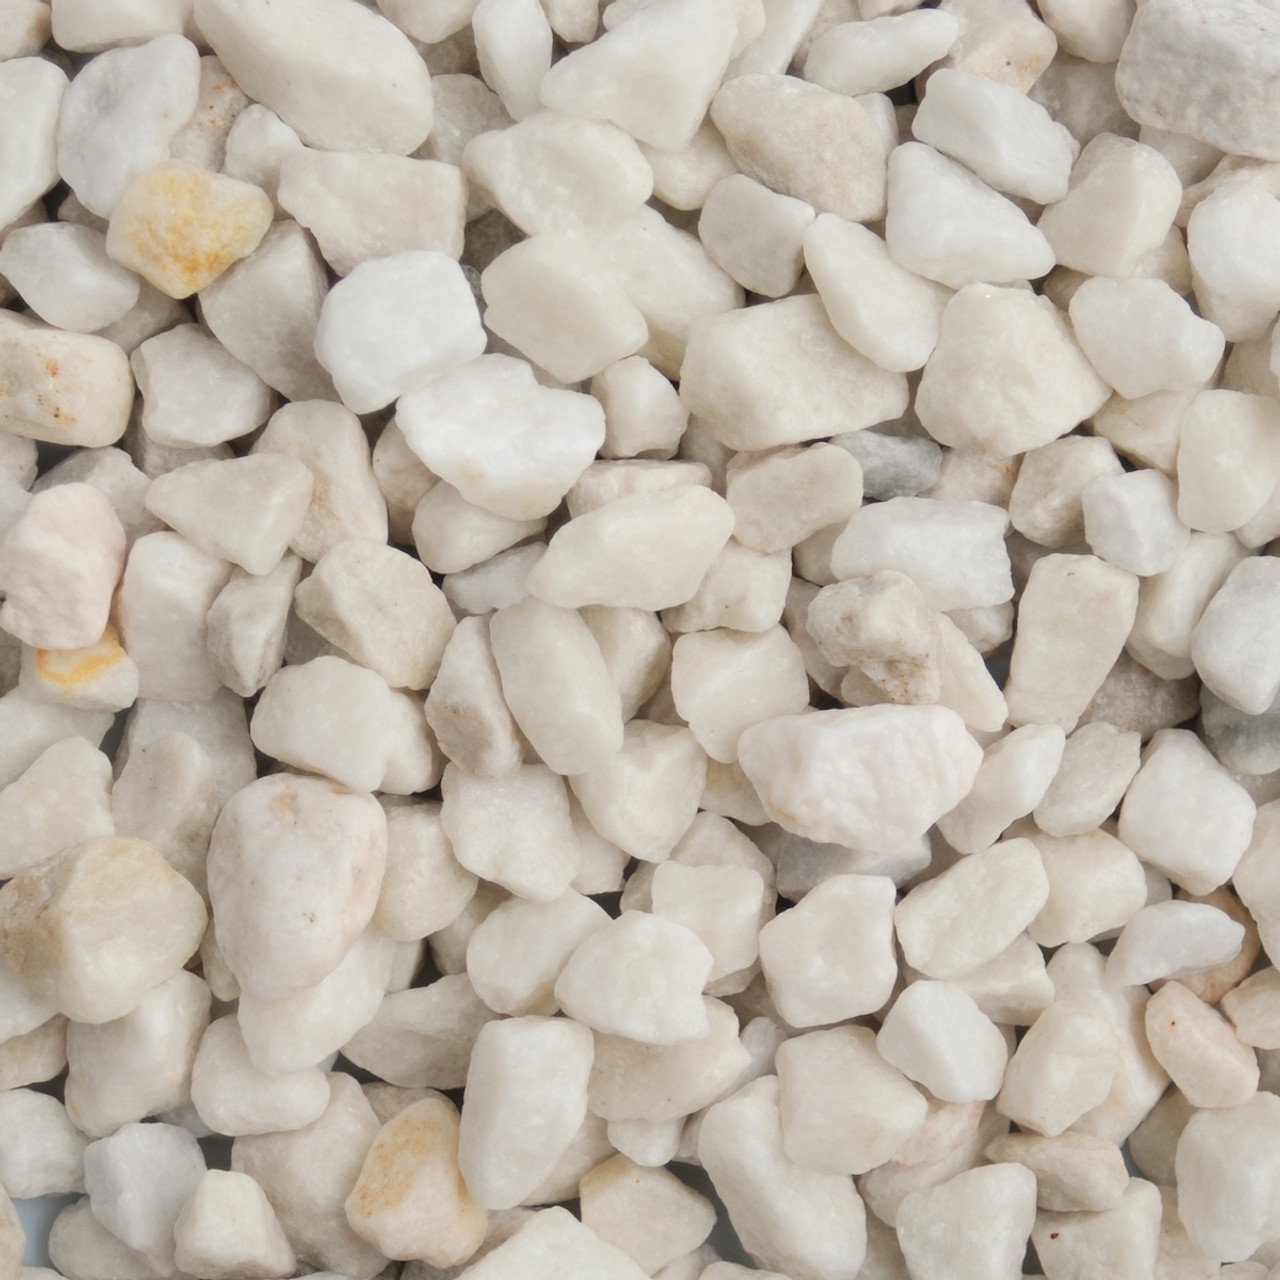 Polar White Chippings 20mm Dumpy bag - LOCAL DELIVERY ONLY (3 MILE RADIUS)